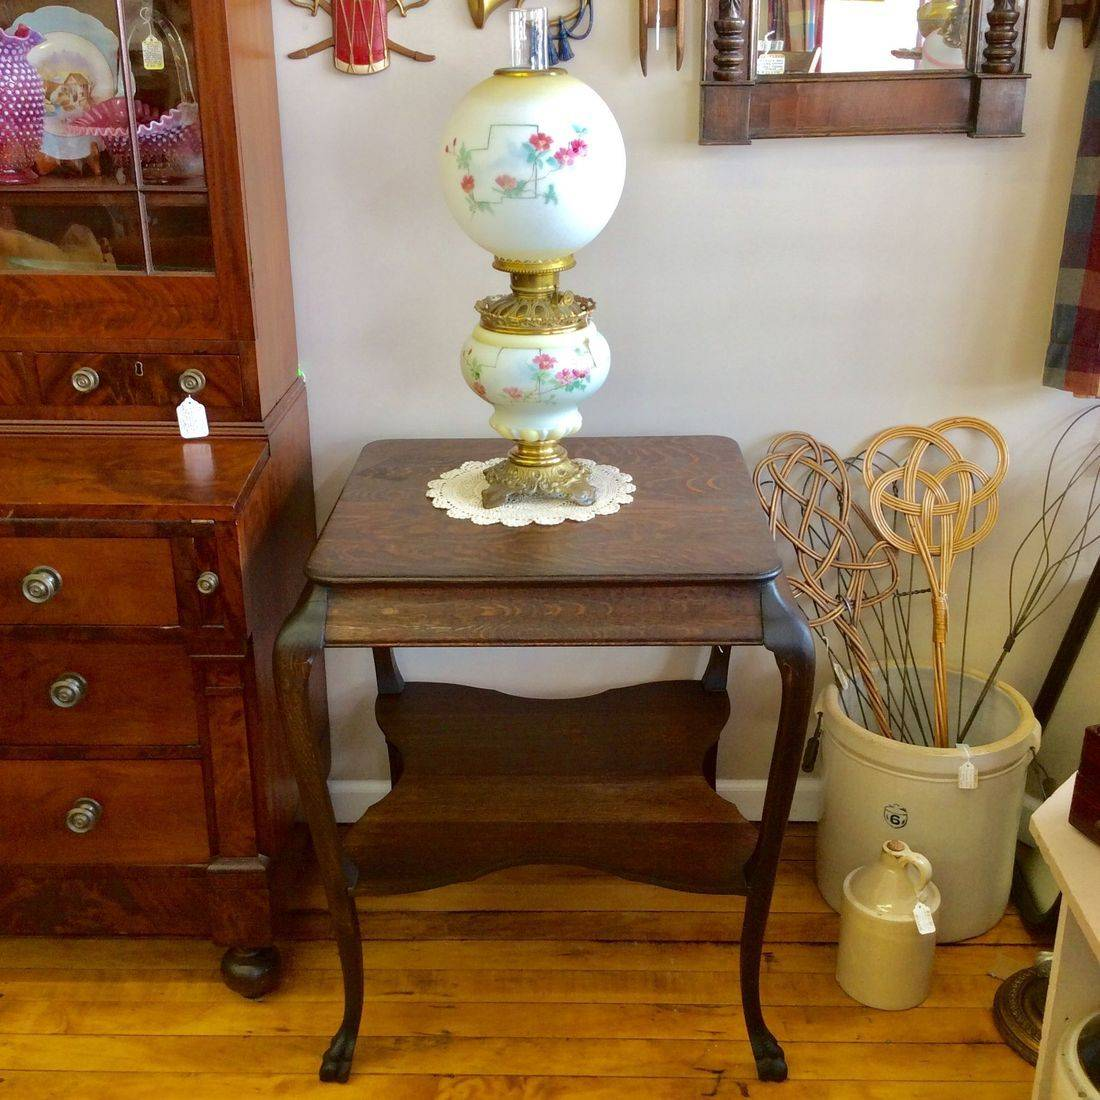 "Early 1900's Oak Parlor Table w/Shelf and Claw Feet  26-1/2""W x 26-1/2""D x 30-1/4""H.  $95.00"